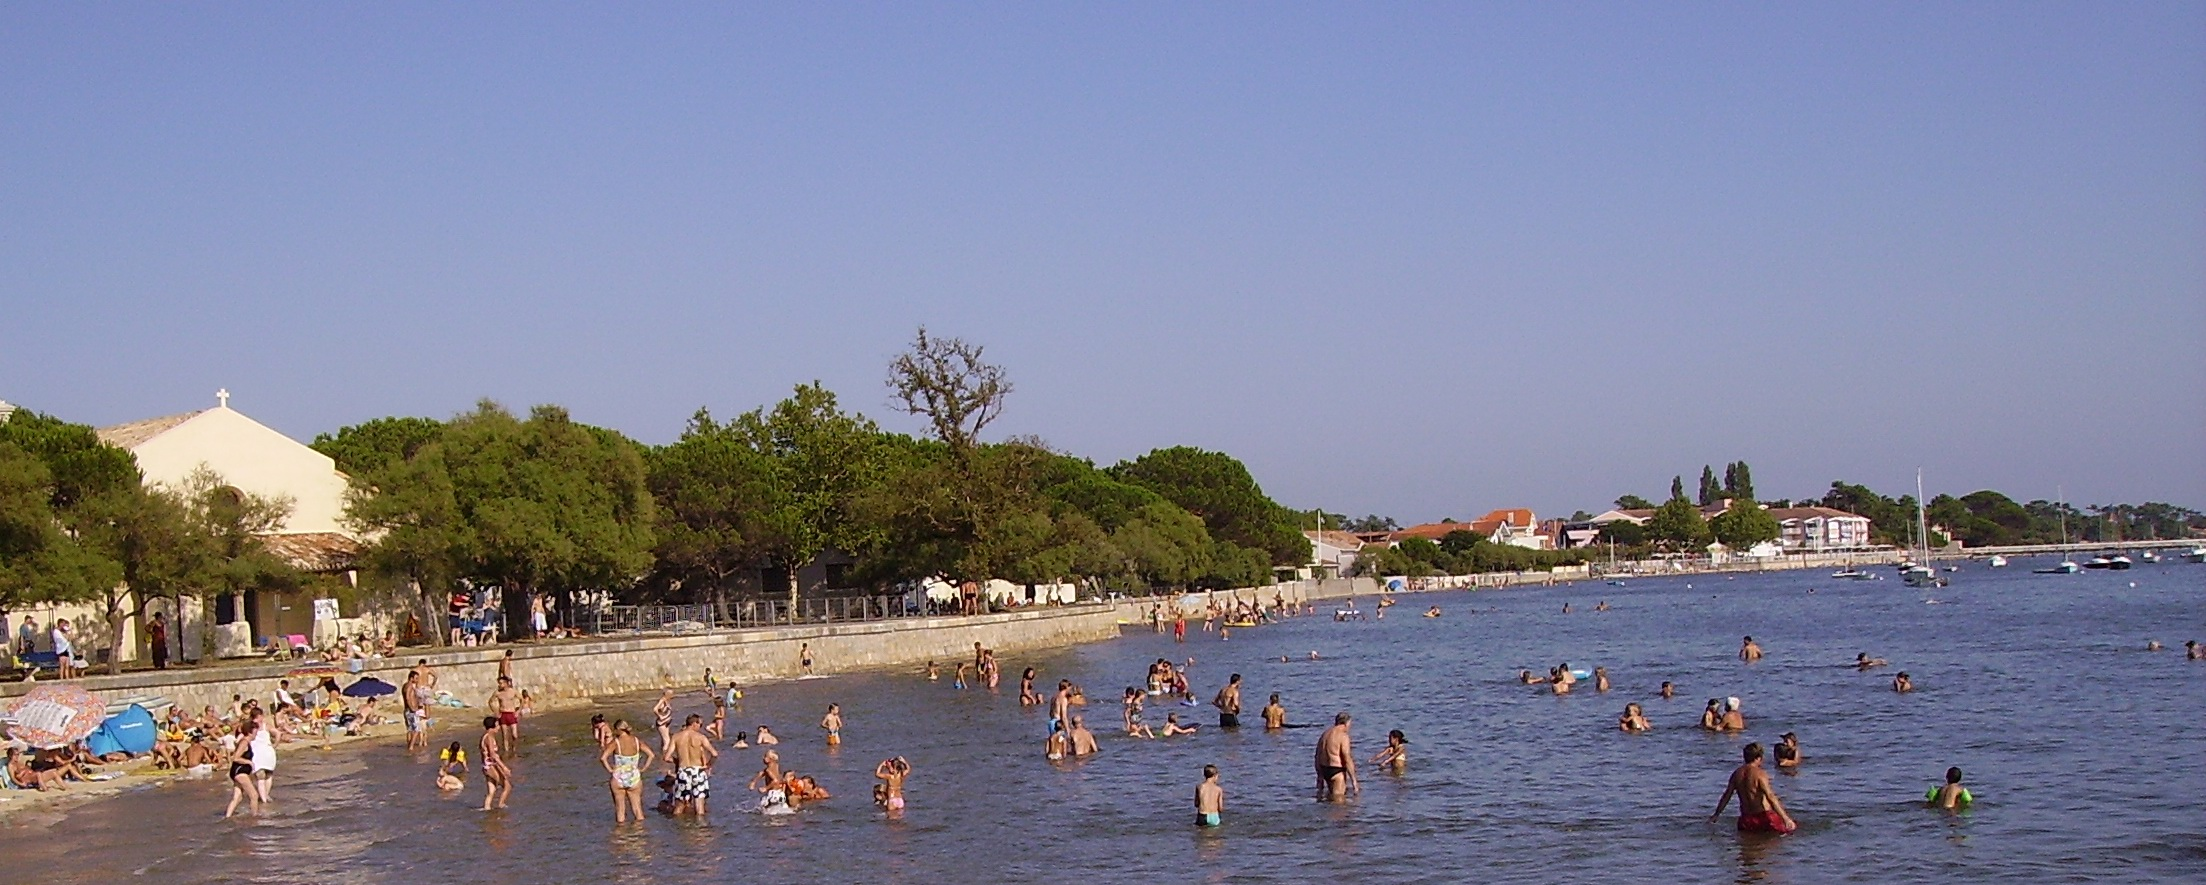 File:Andernos-les-Bains - plage.jpg - Wikimedia Commons